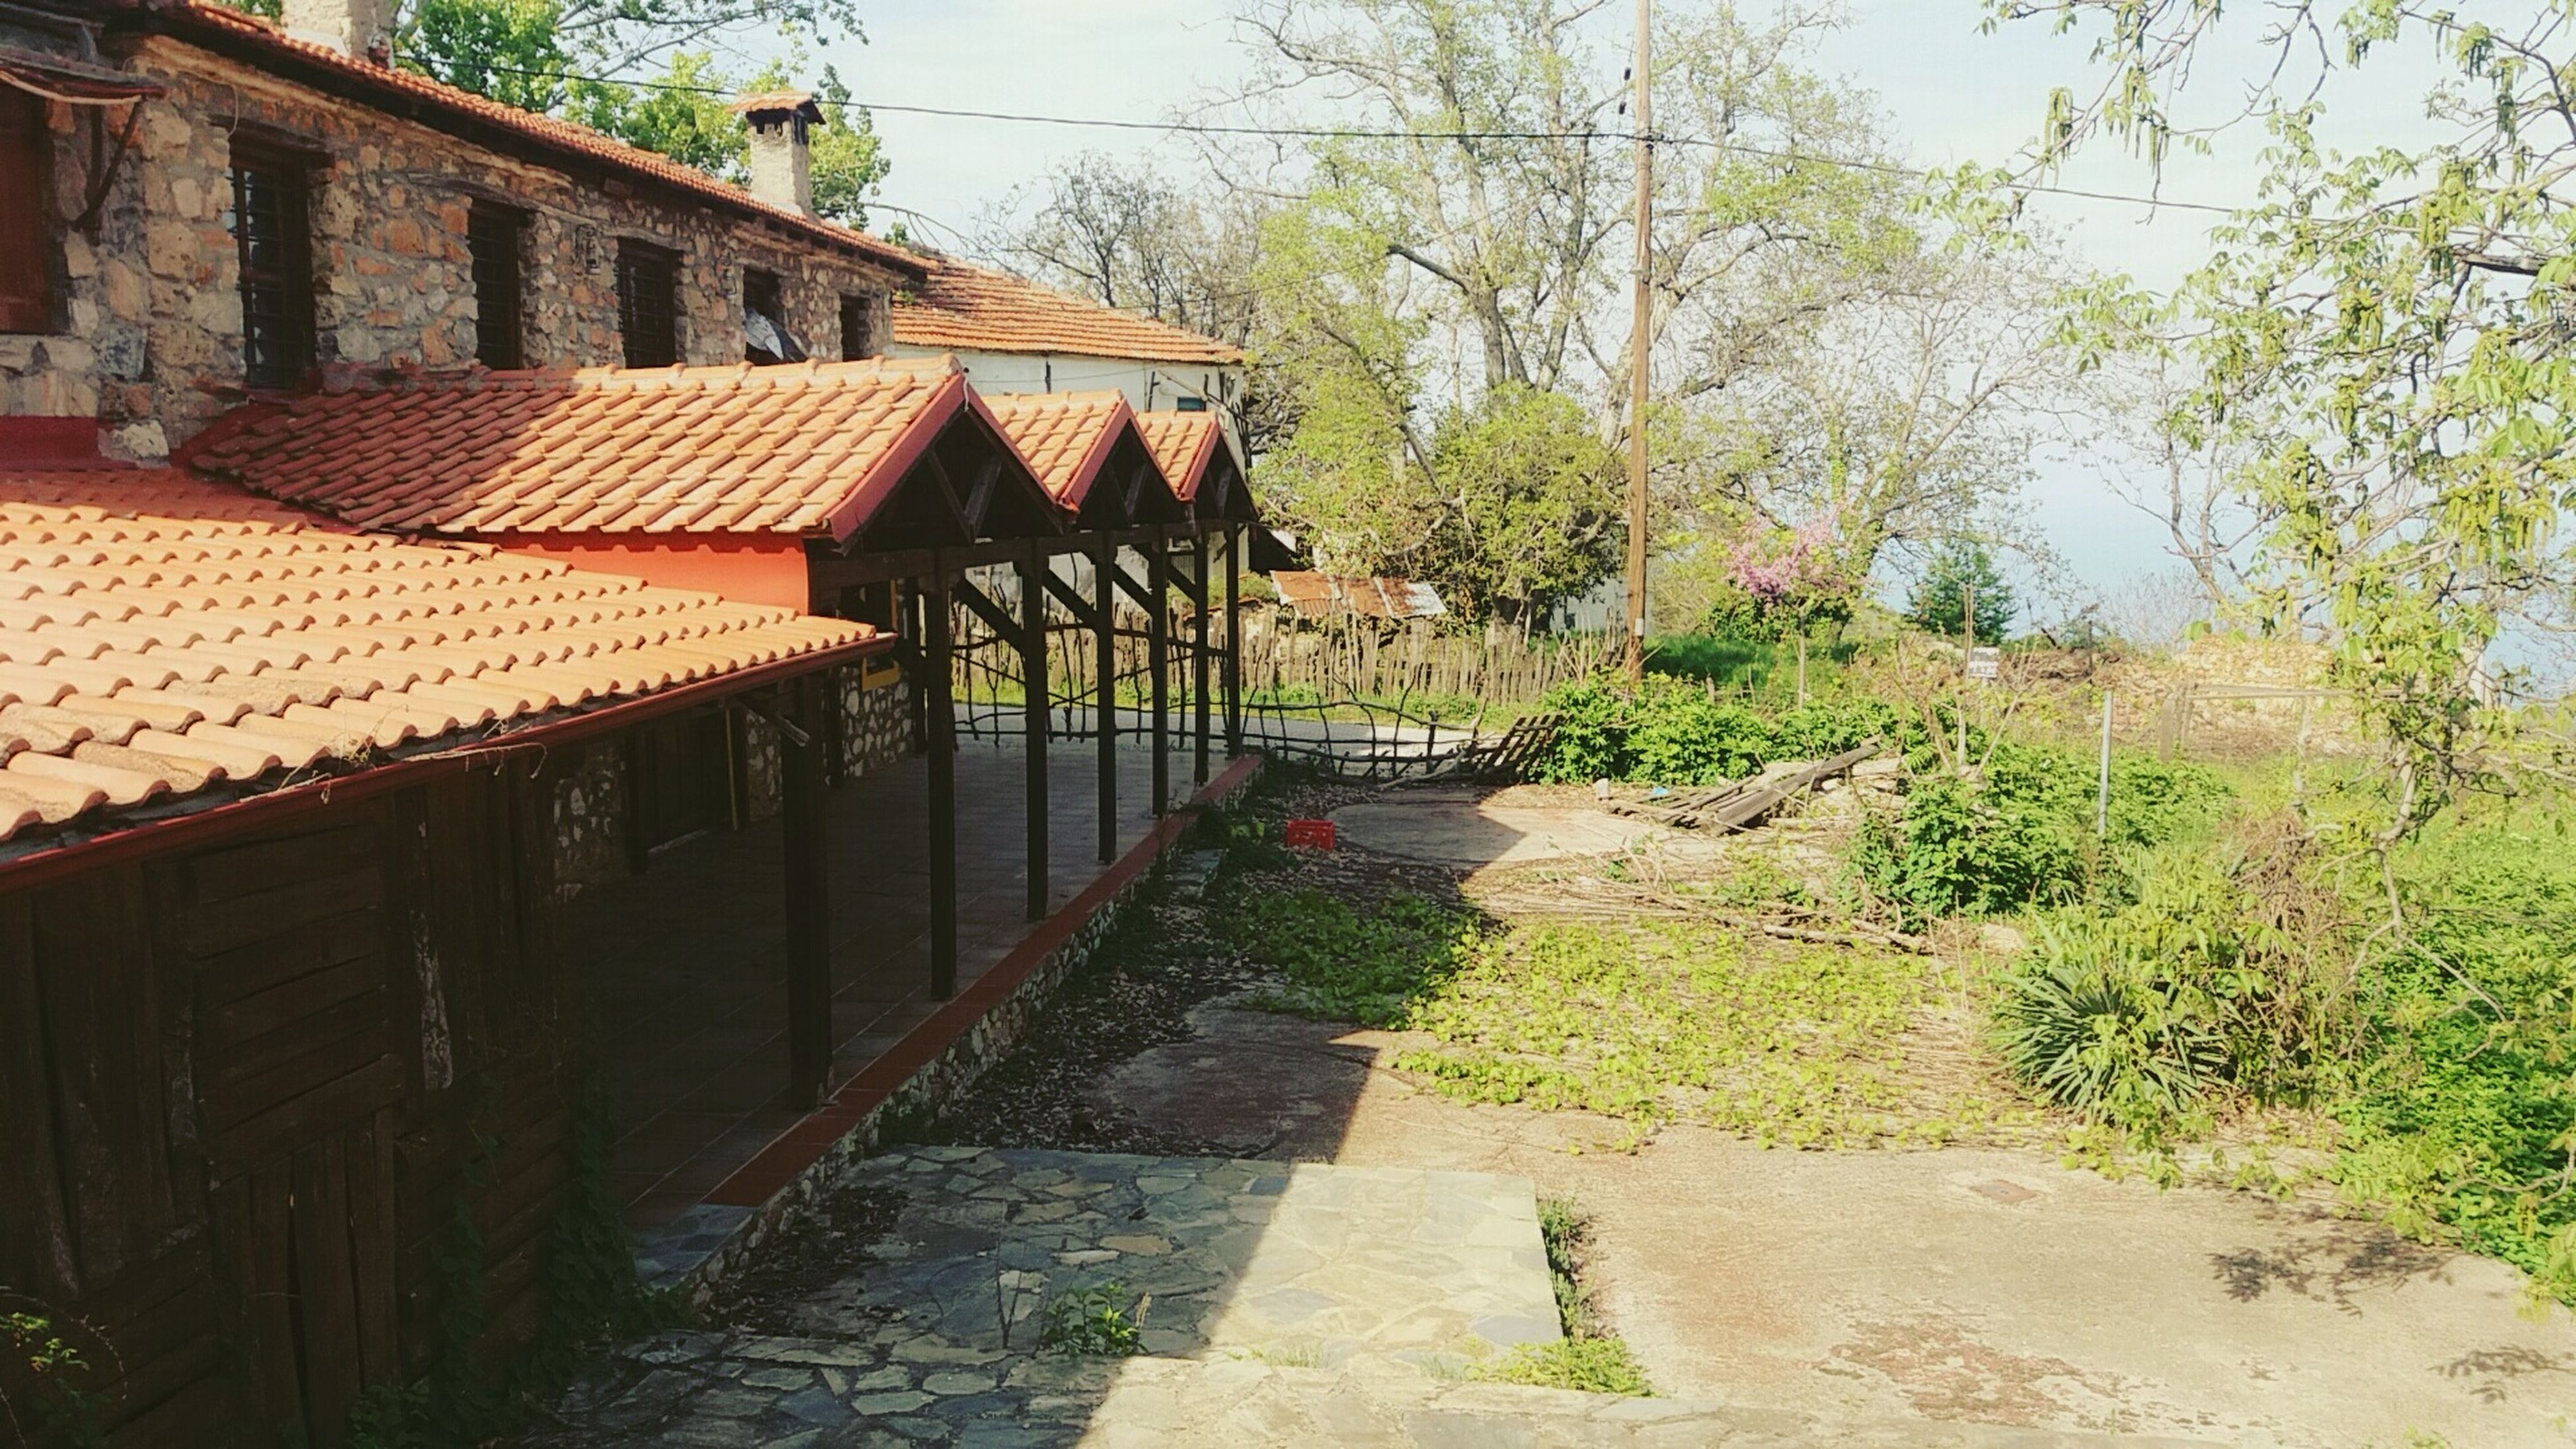 built structure, architecture, no people, building exterior, outdoors, day, house, tree, nature, tiled roof, sky